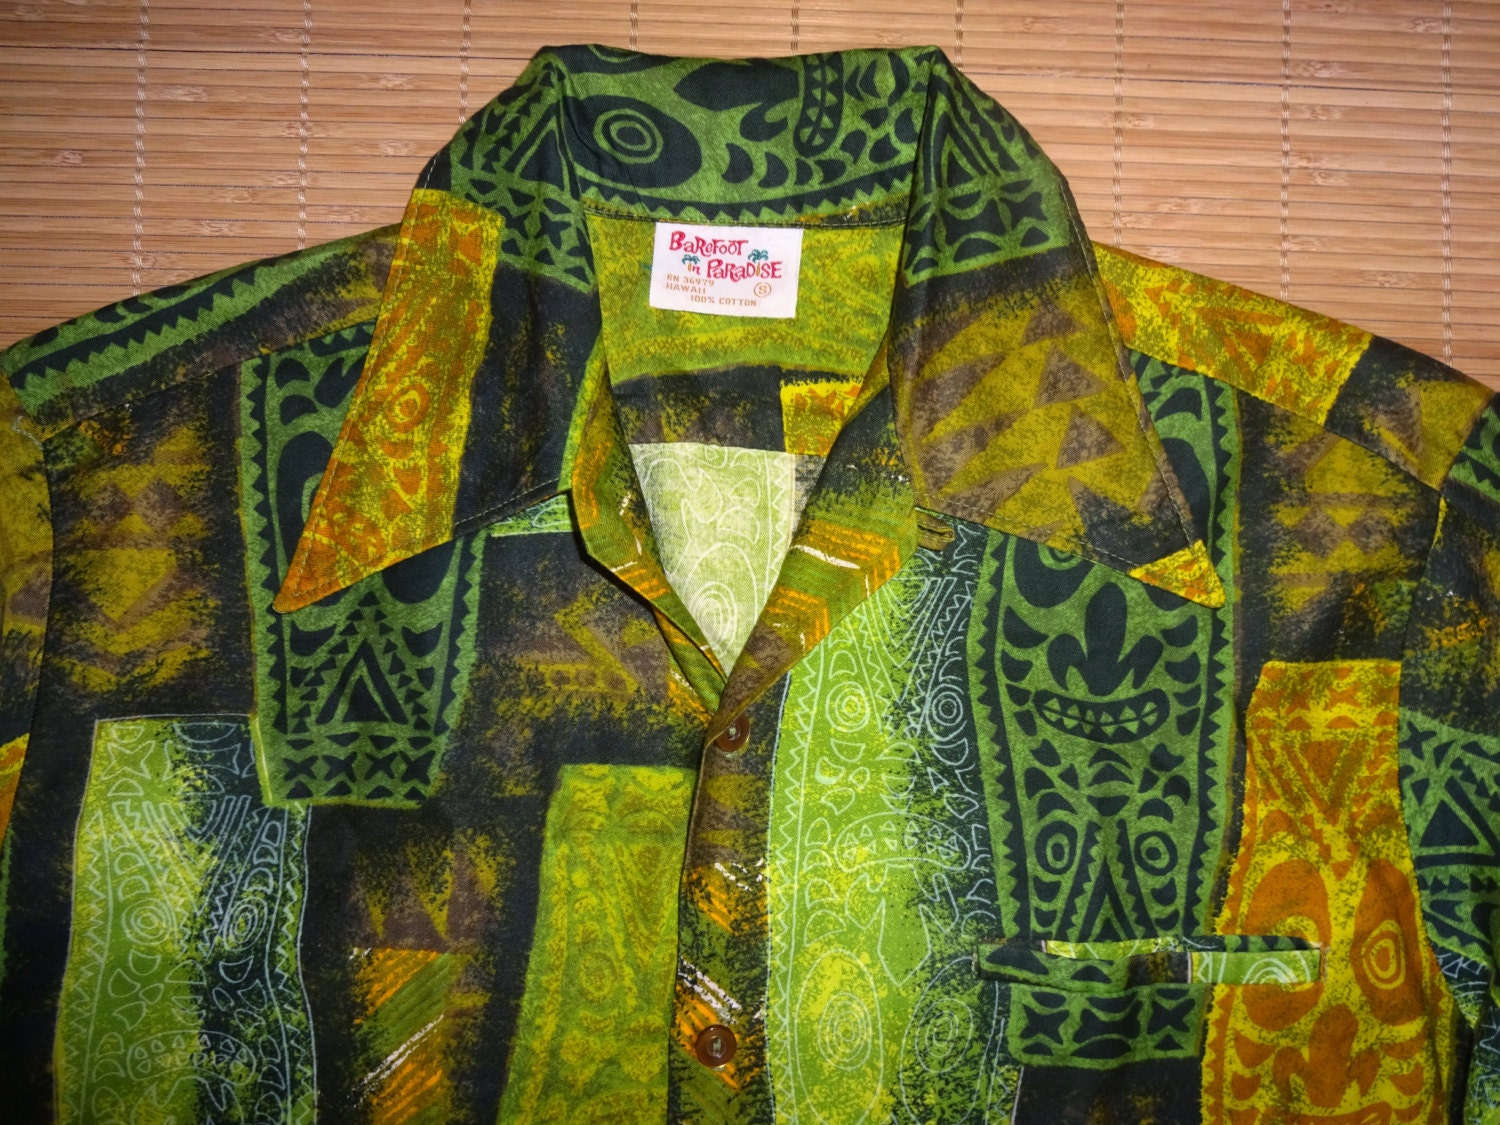 1bb3a7fc Mens Vintage 60s Barefoot TIKI TIKI Hawaiian Aloha Shirt - S - The Hana  Shirt Co